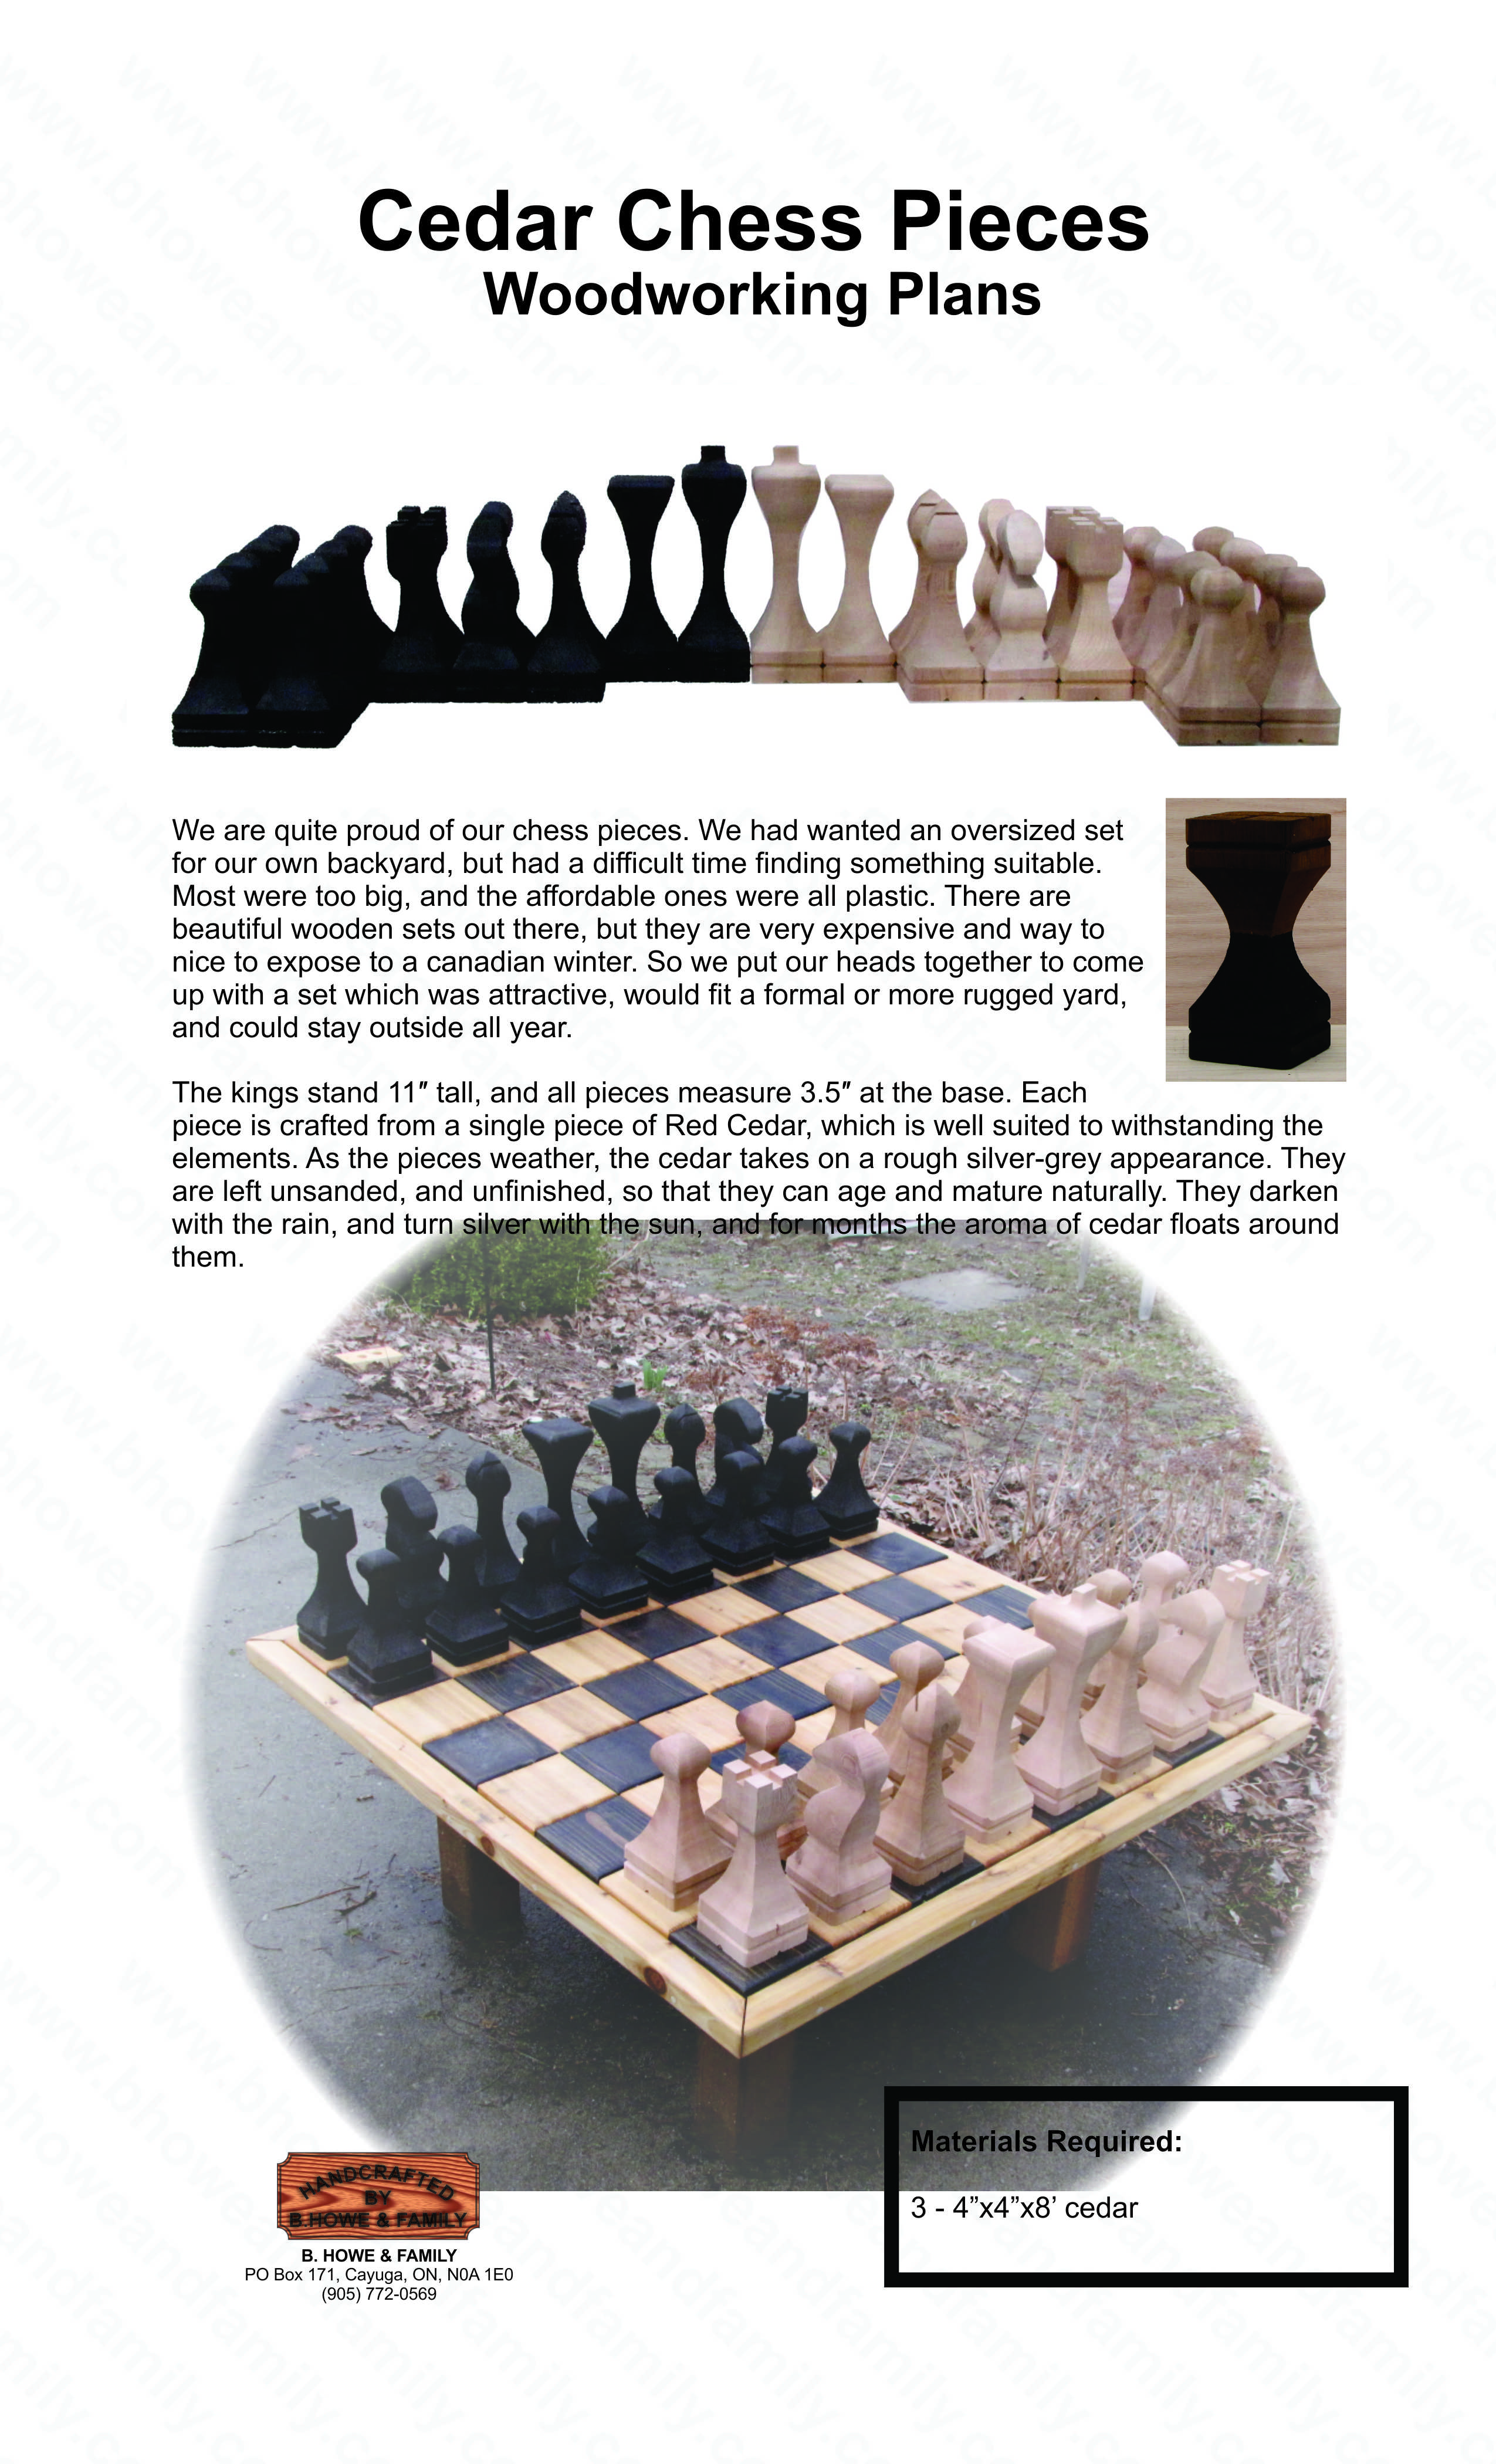 wood working plans to make box for chess pieces